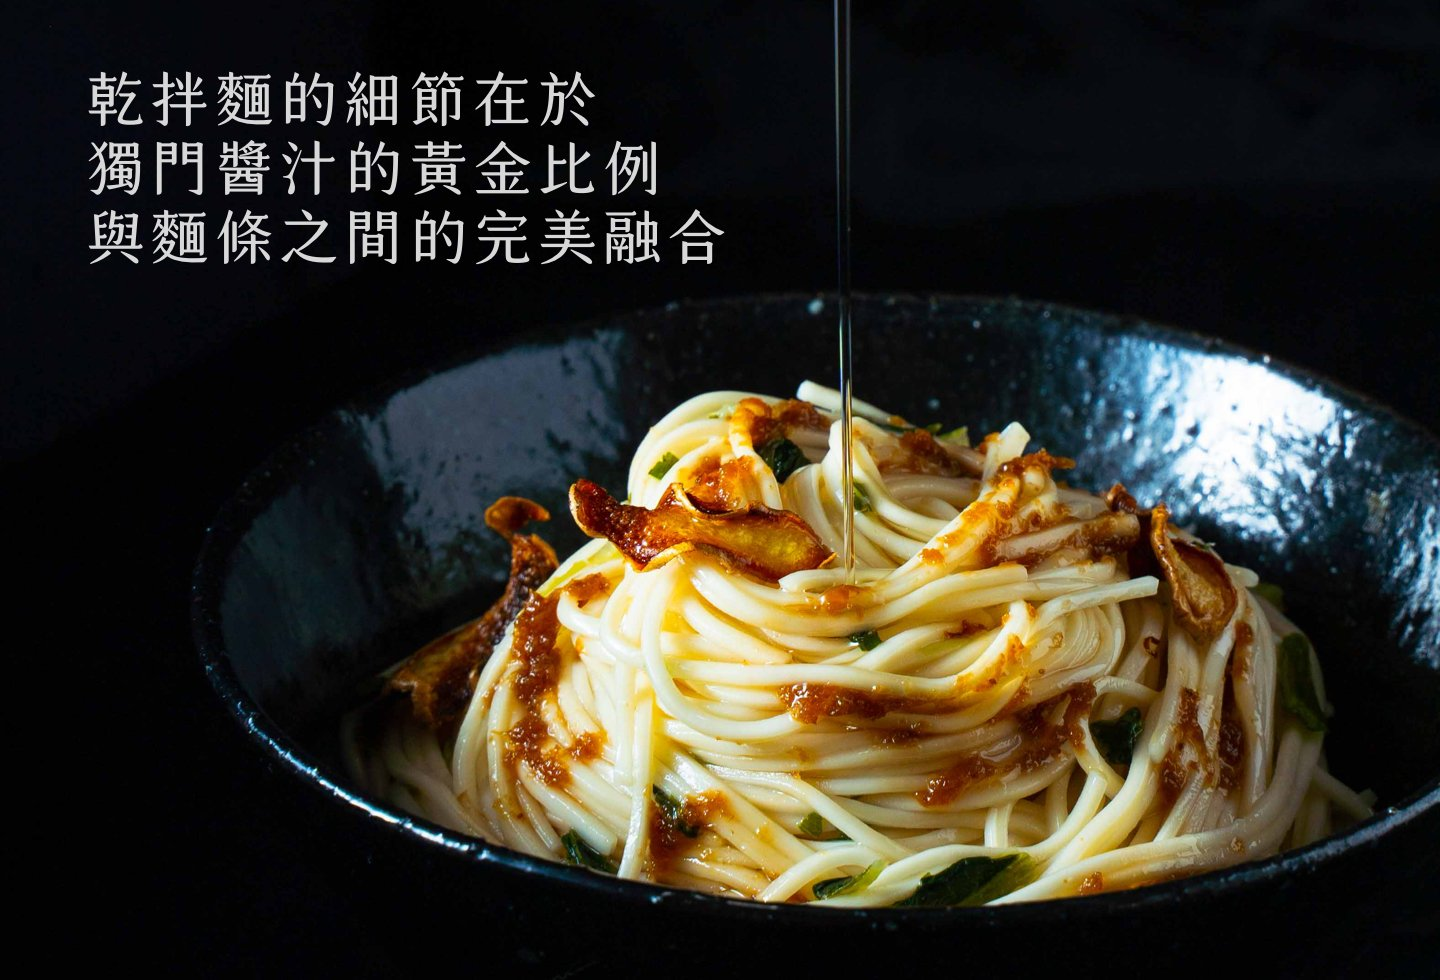 老薑麻油細麵 Noodles with Ginger & Sesame Oil